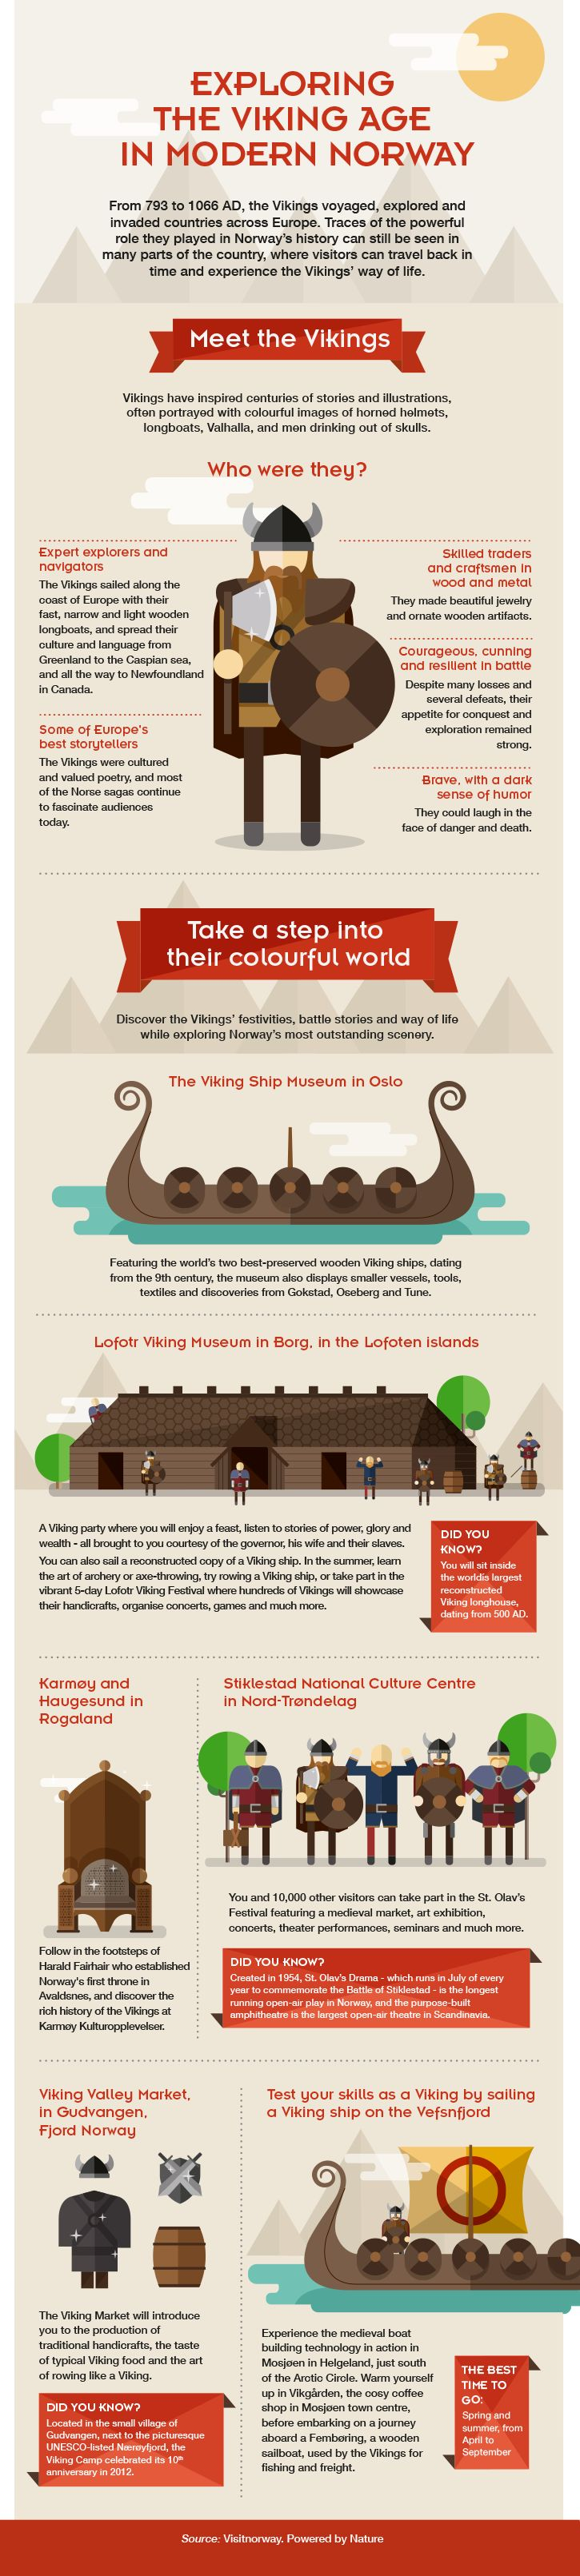 INFOGRAPHIC: Exploring the Viking Age in Modern Norway